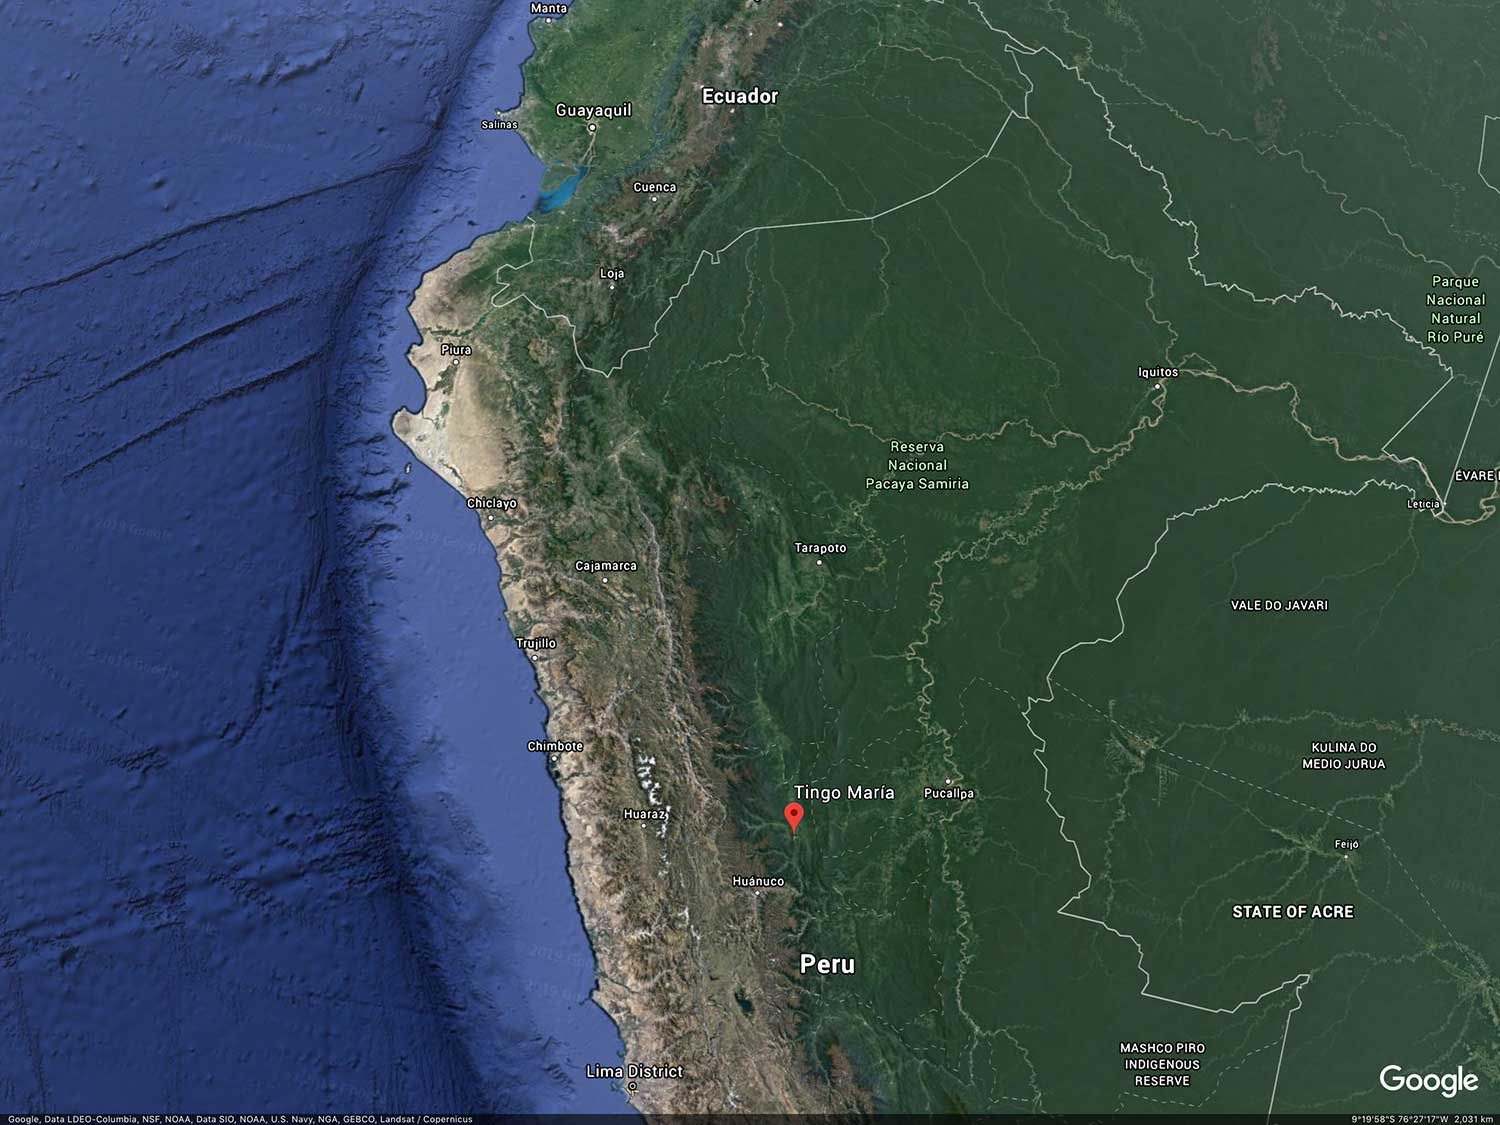 Tingo María is situated between the busy jungle port city of Pucallpa and Peru's capital, Lima, on the Pacific.